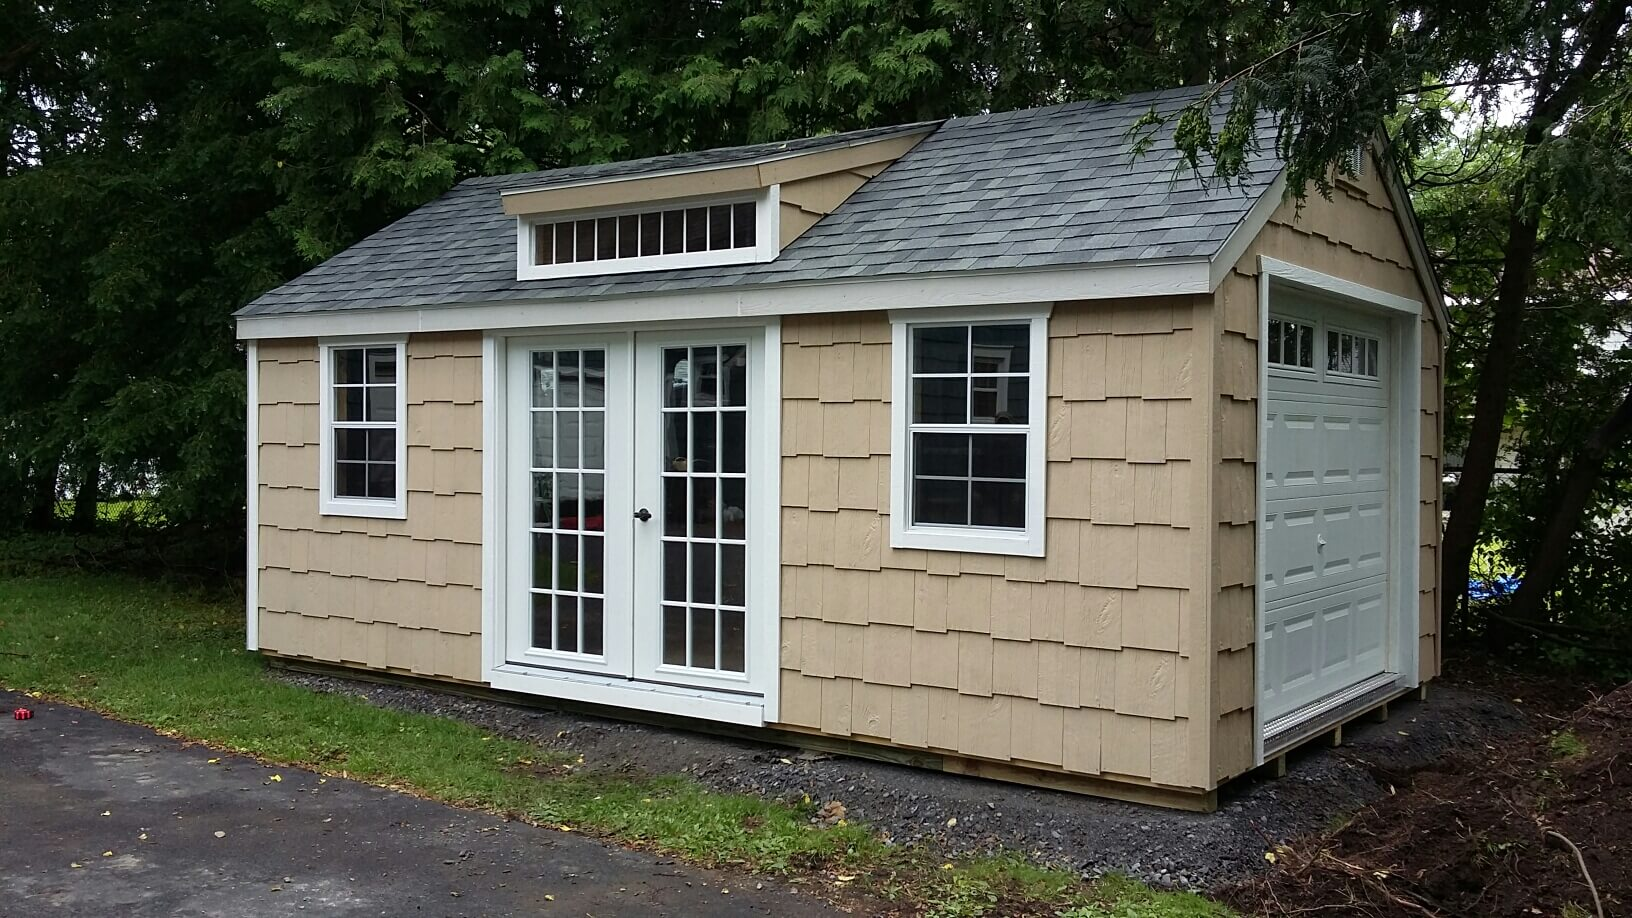 Sheds - Mohawk Valley Sheds Cabins and More    | Quality Storage